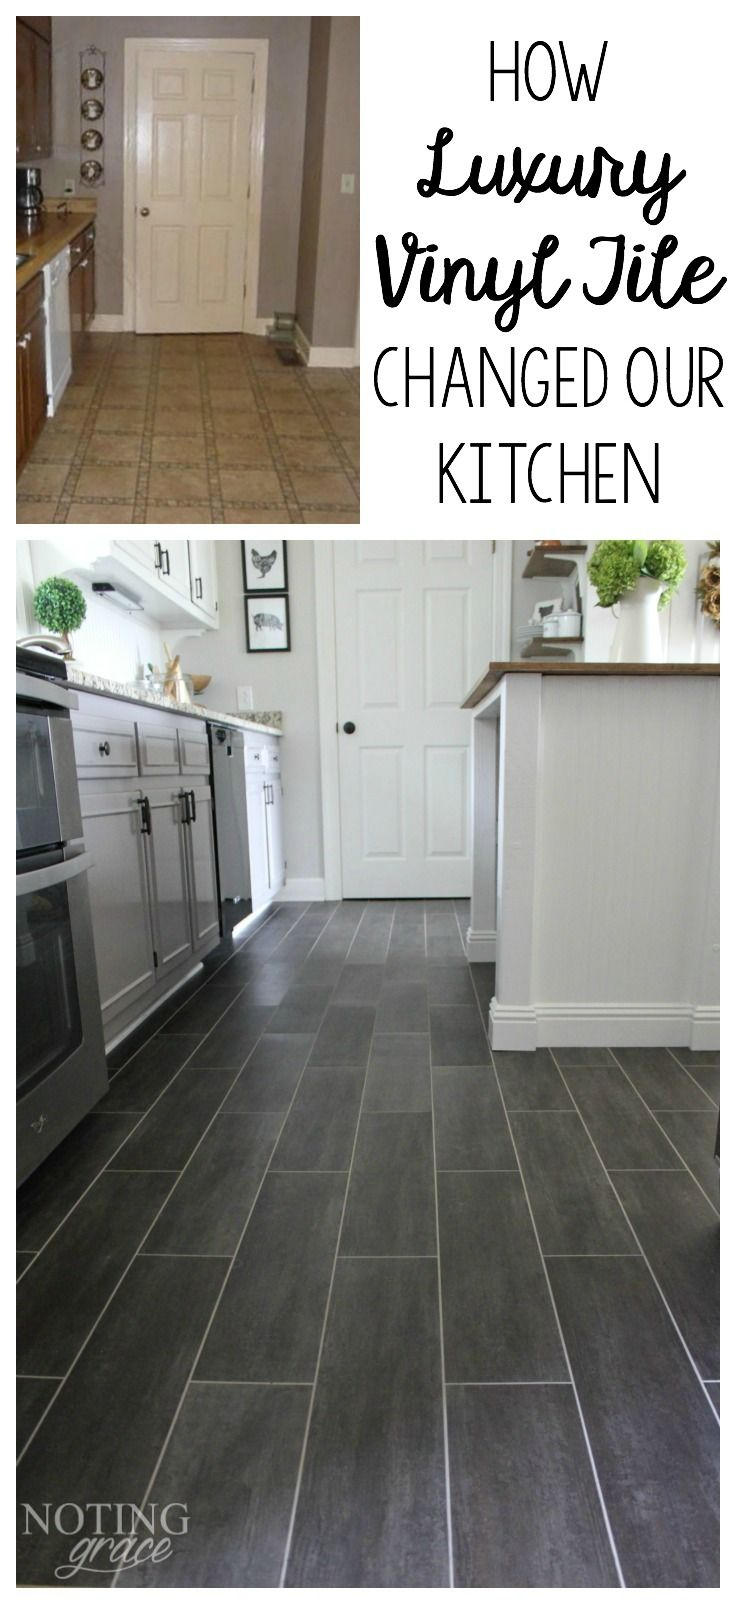 DIY Kitchen Flooring | Pinterest | Luxury vinyl tile, Vinyl tiles ...